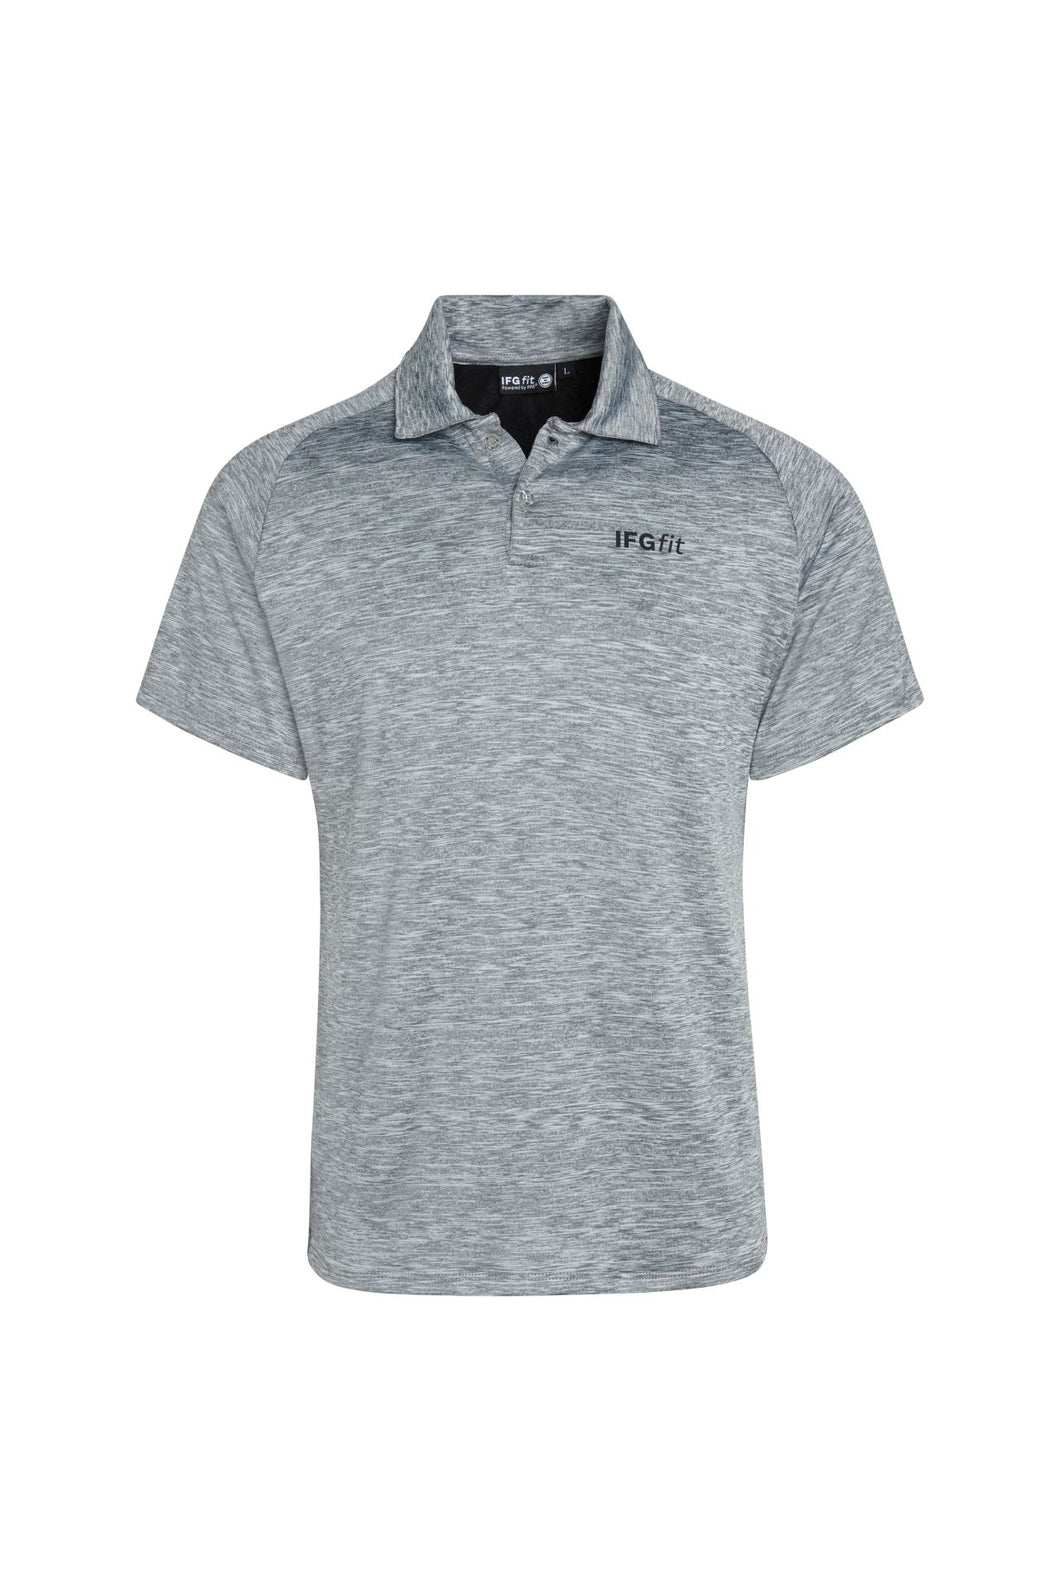 Men's Polo Tech Posture Gear